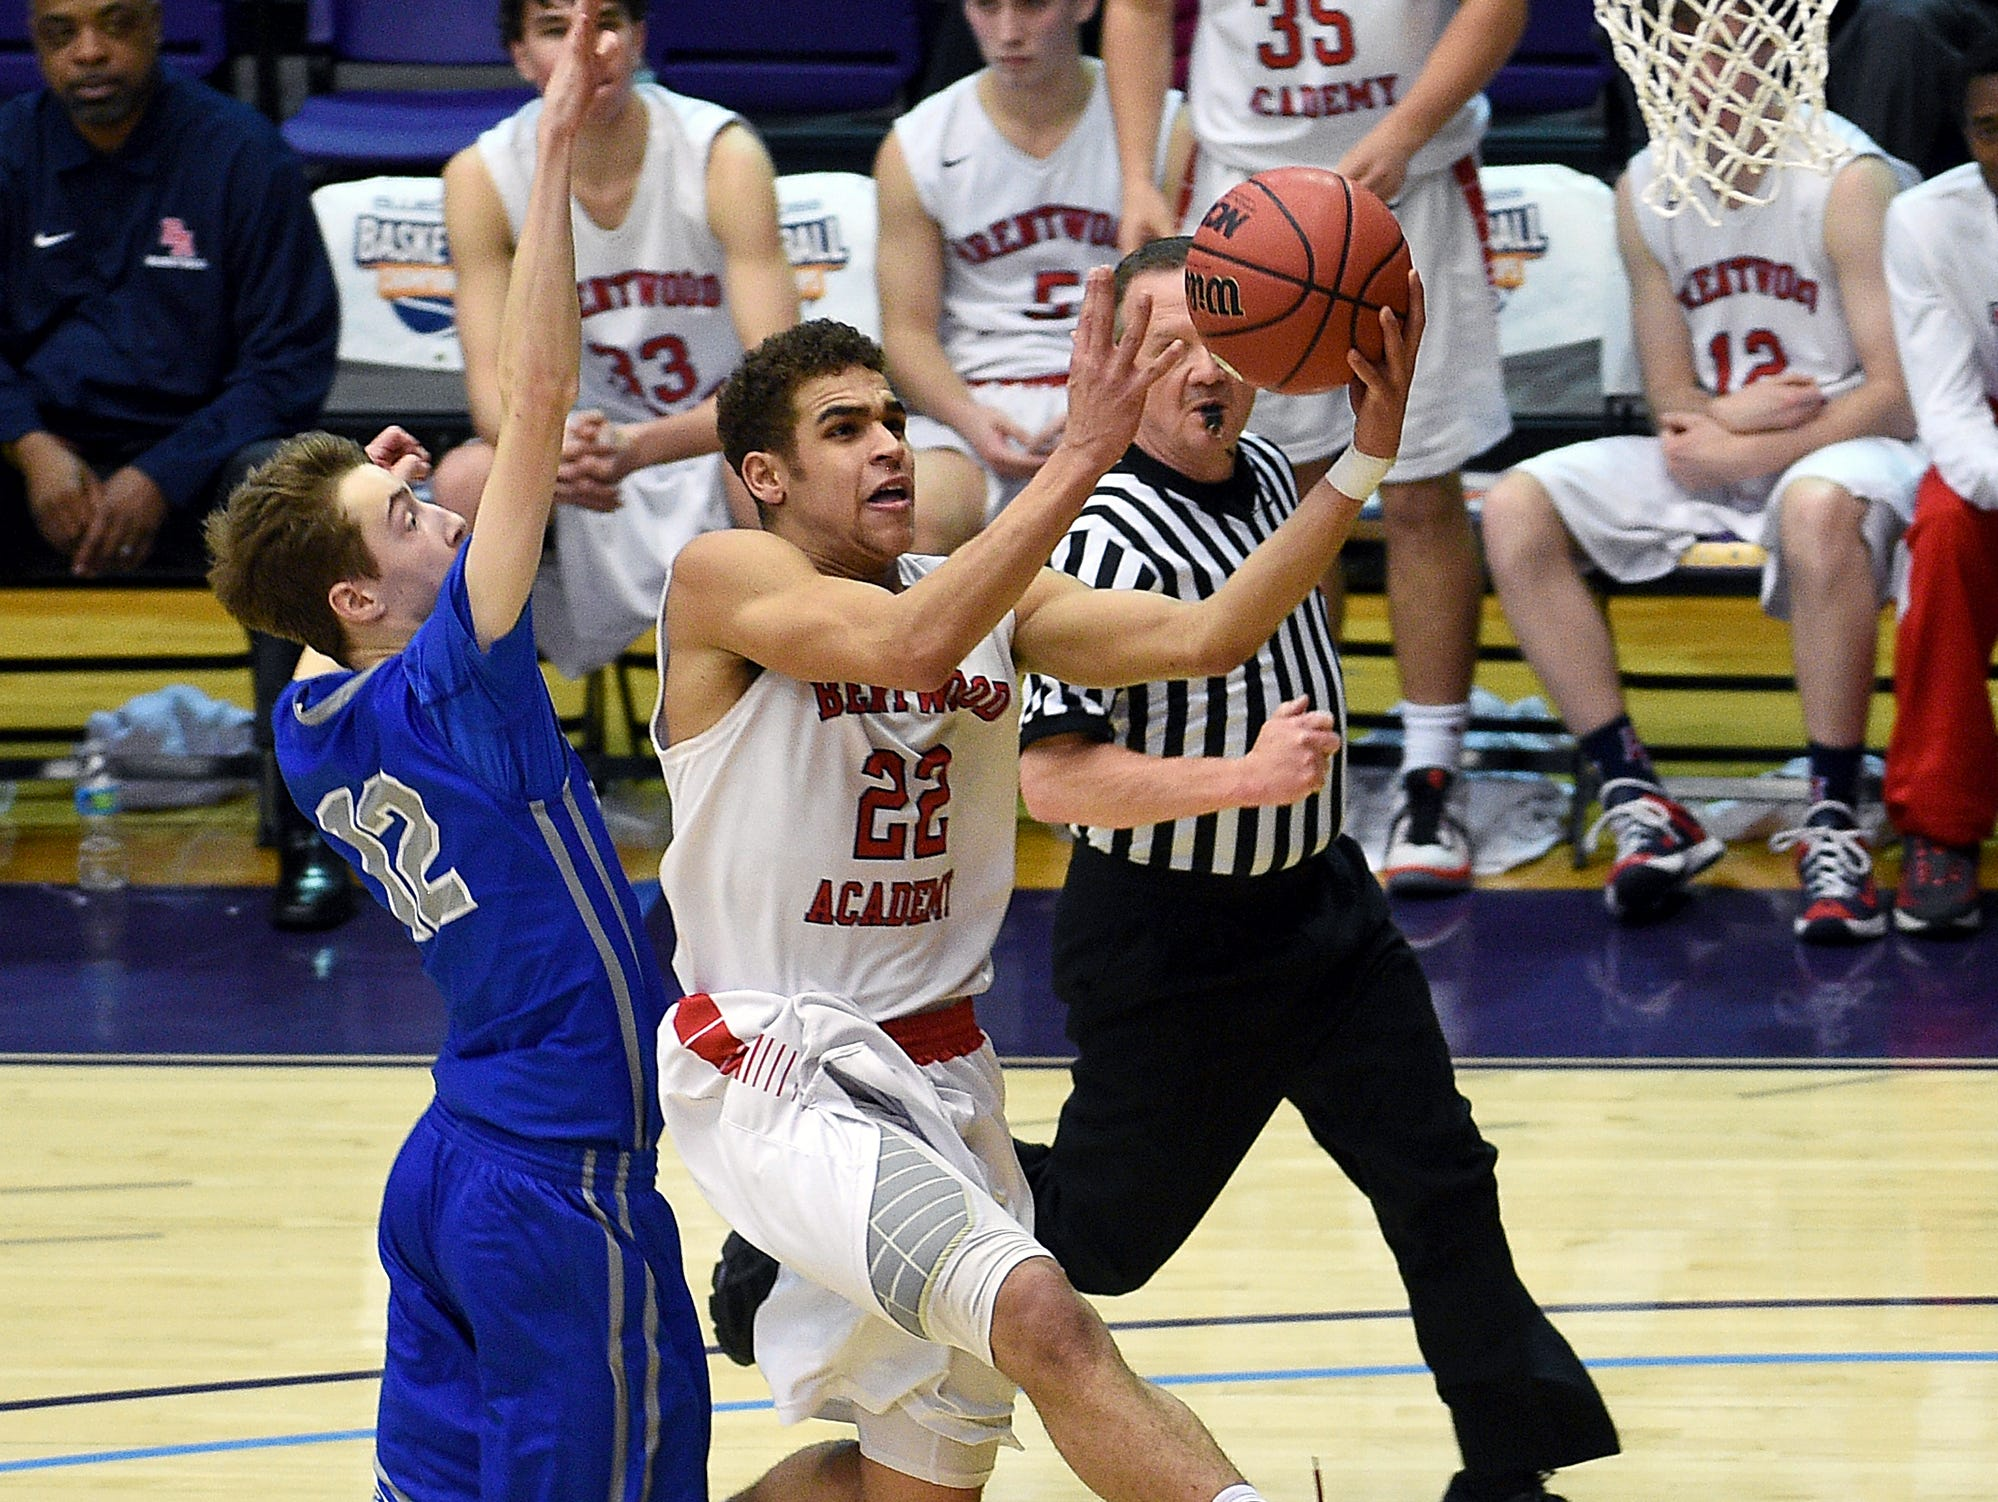 Brentwood Academy's Cam Johnson (22) shoots a layup against McCallie's Henley Edge (12) during the TSSAA Boys DII-AA semifinal at Lipscomb University on March 4, 2016.